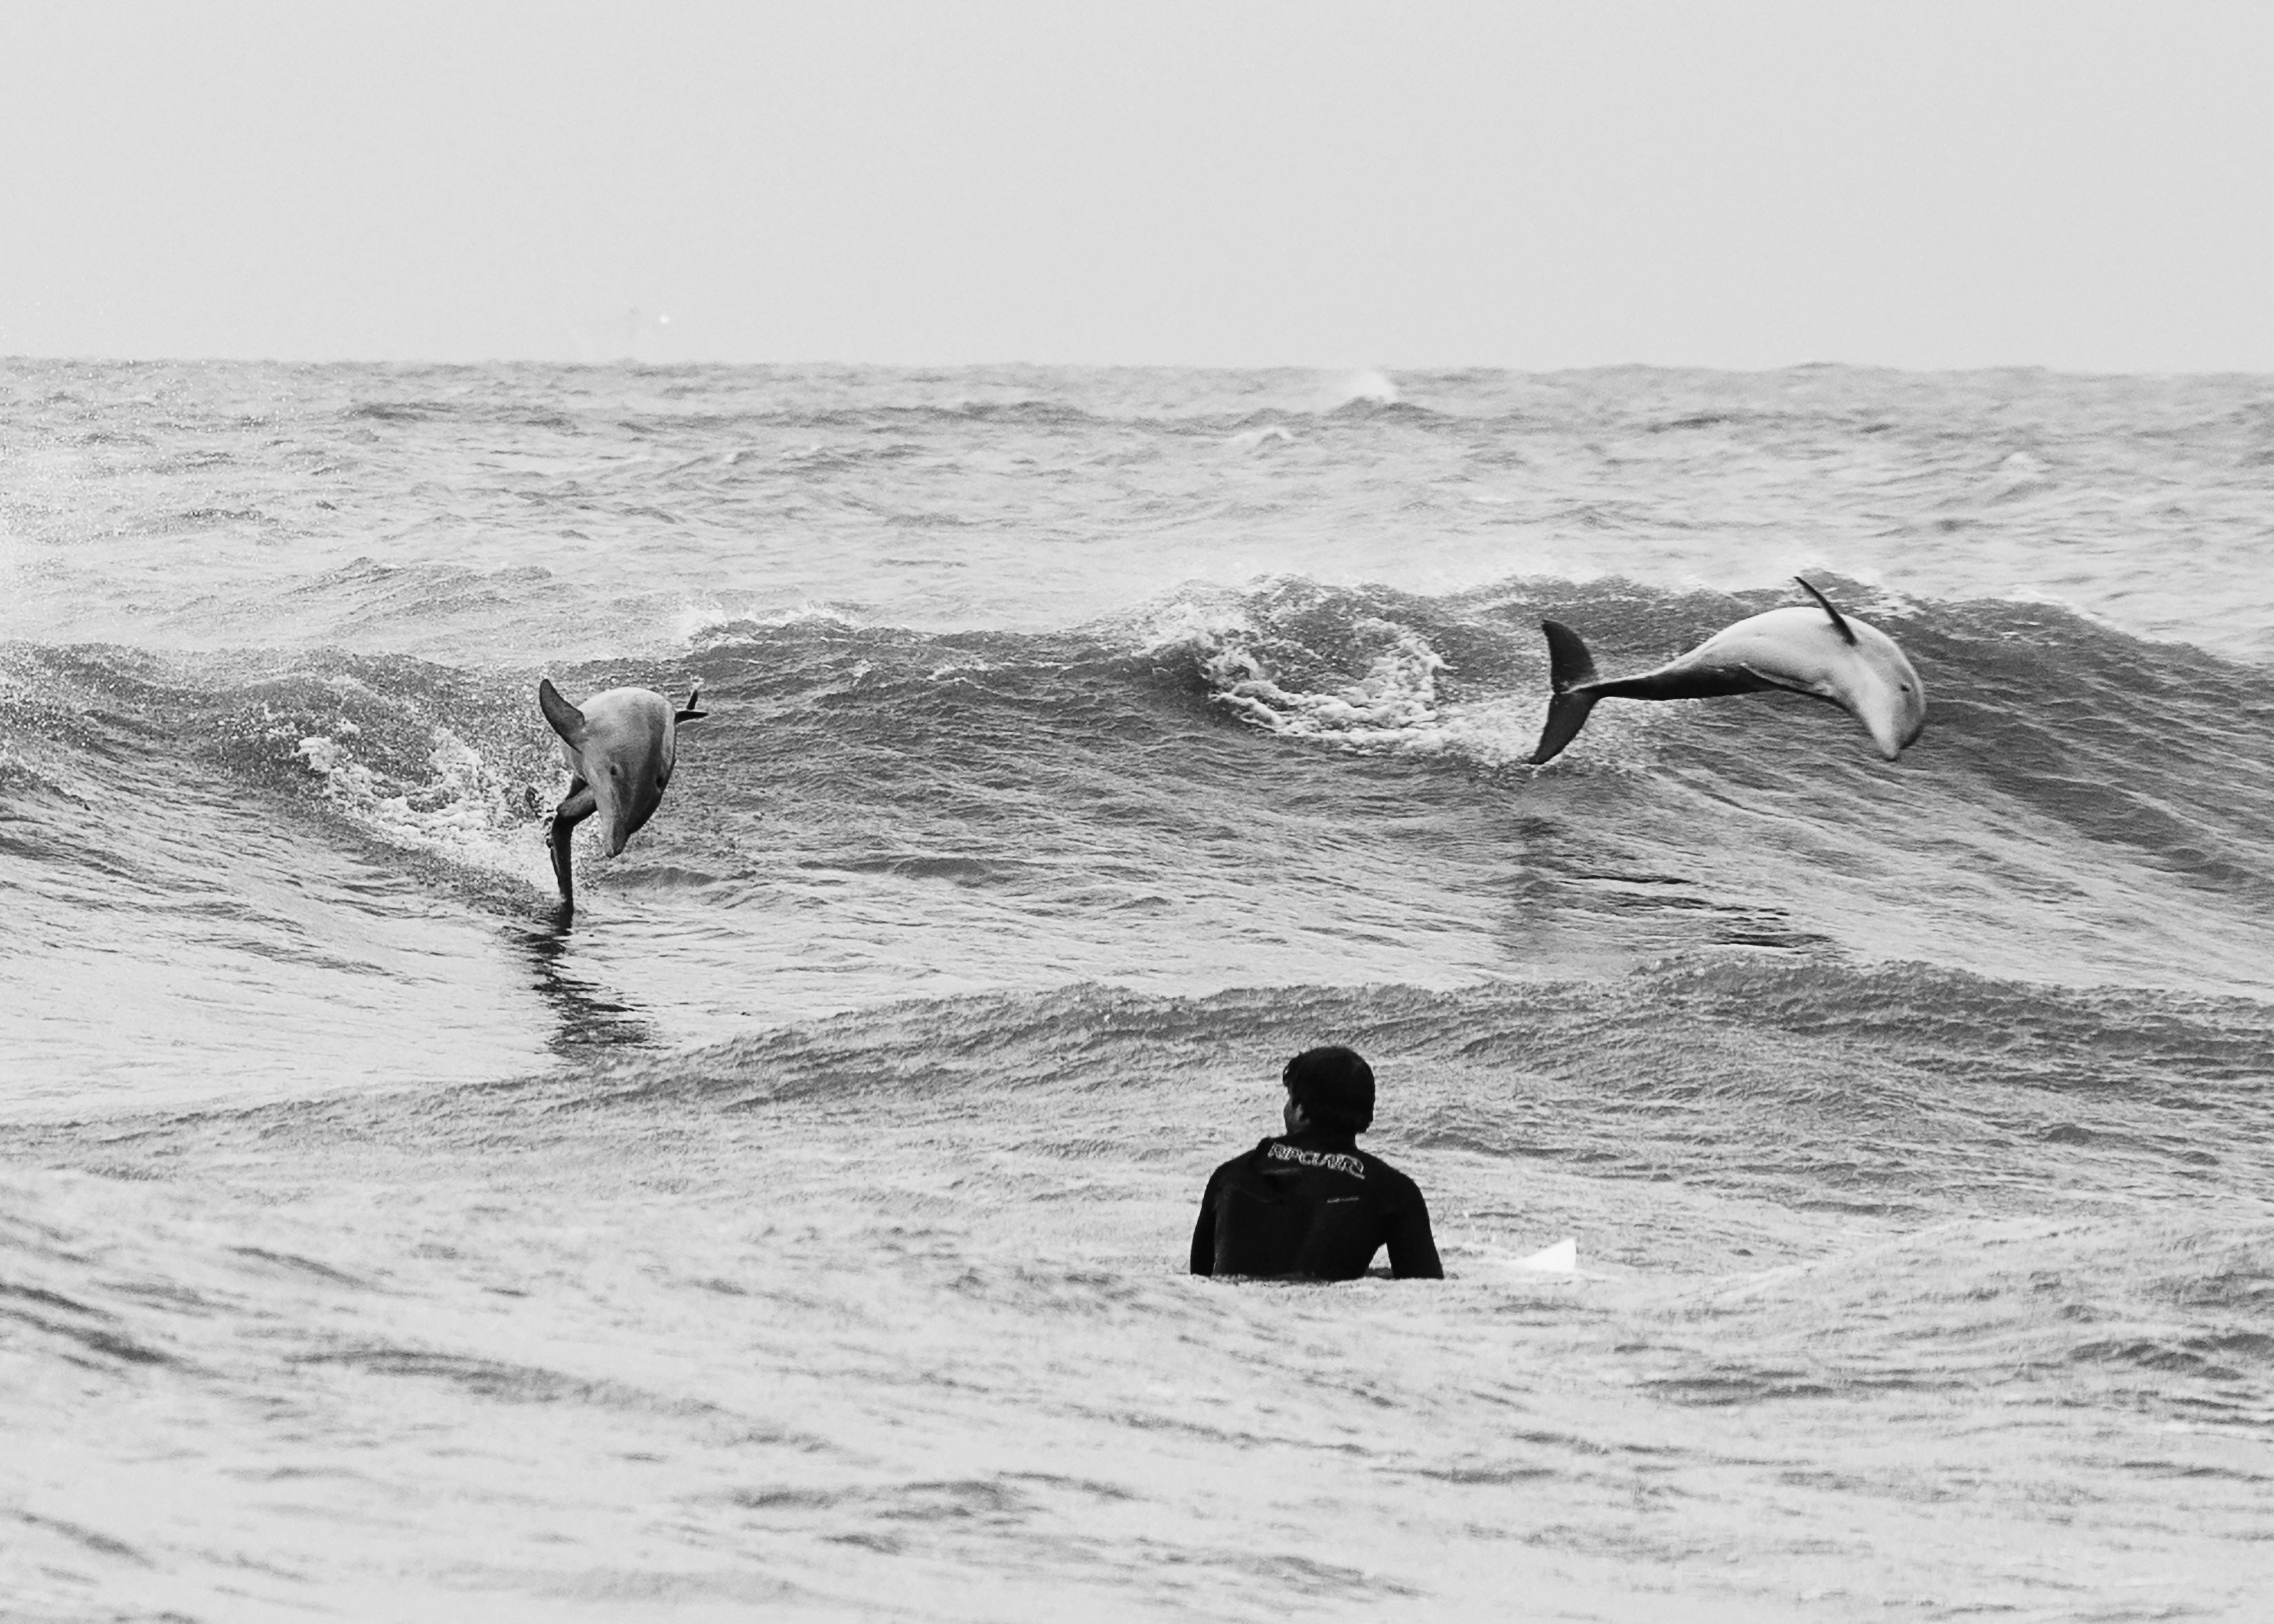 Grand Isle surfer and dolphins